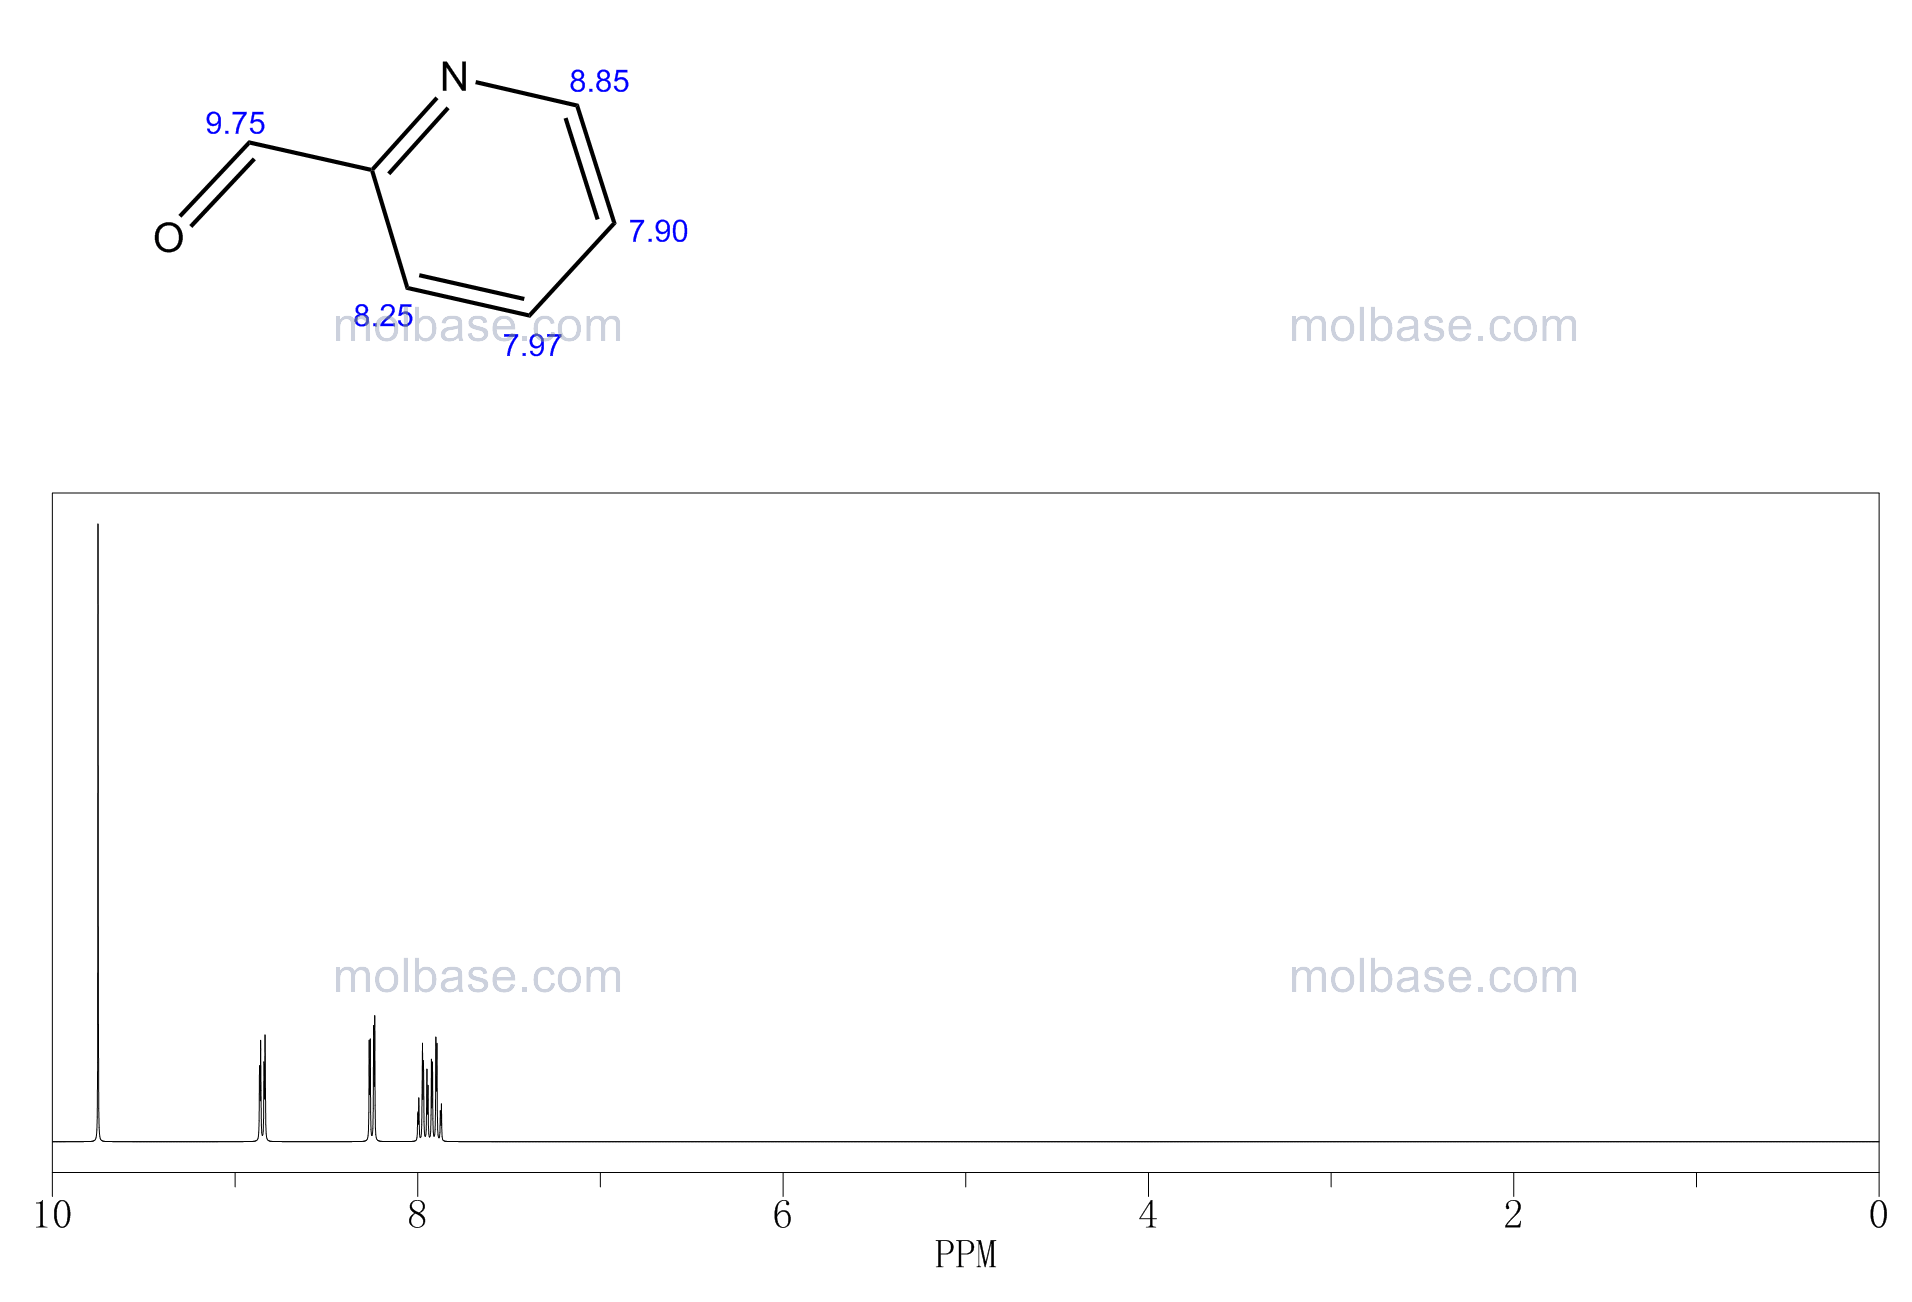 2-formylpyridine NMR spectra analysis, Chemical CAS NO. 1121-60-4 NMR spectral analysis, 2-formylpyridine C-NMR spectrum